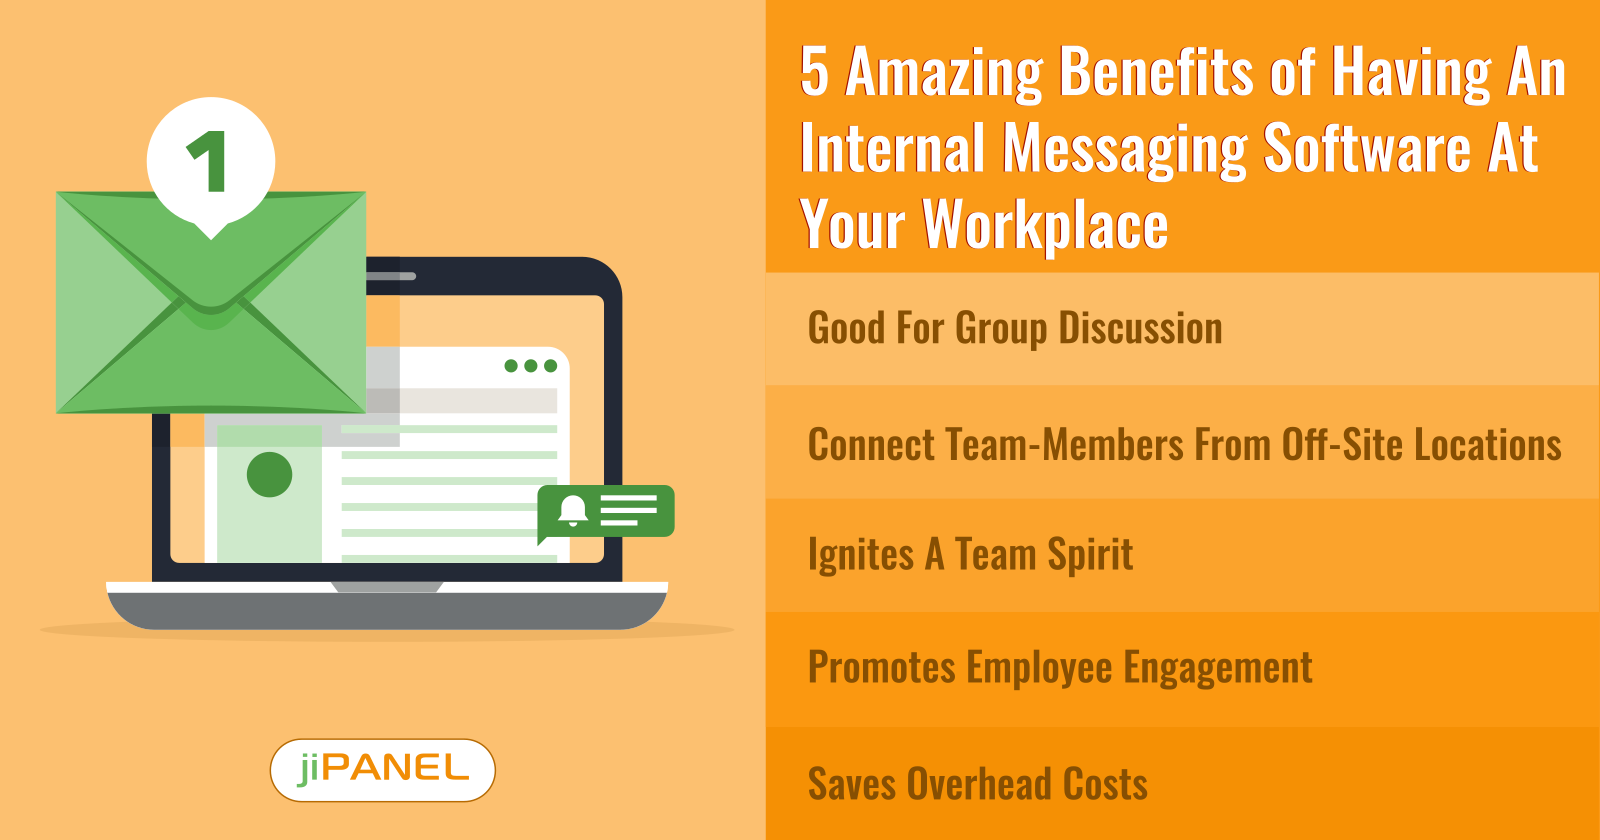 5 Amazing Benefits of Having An Internal Messaging Software At Your Workplace